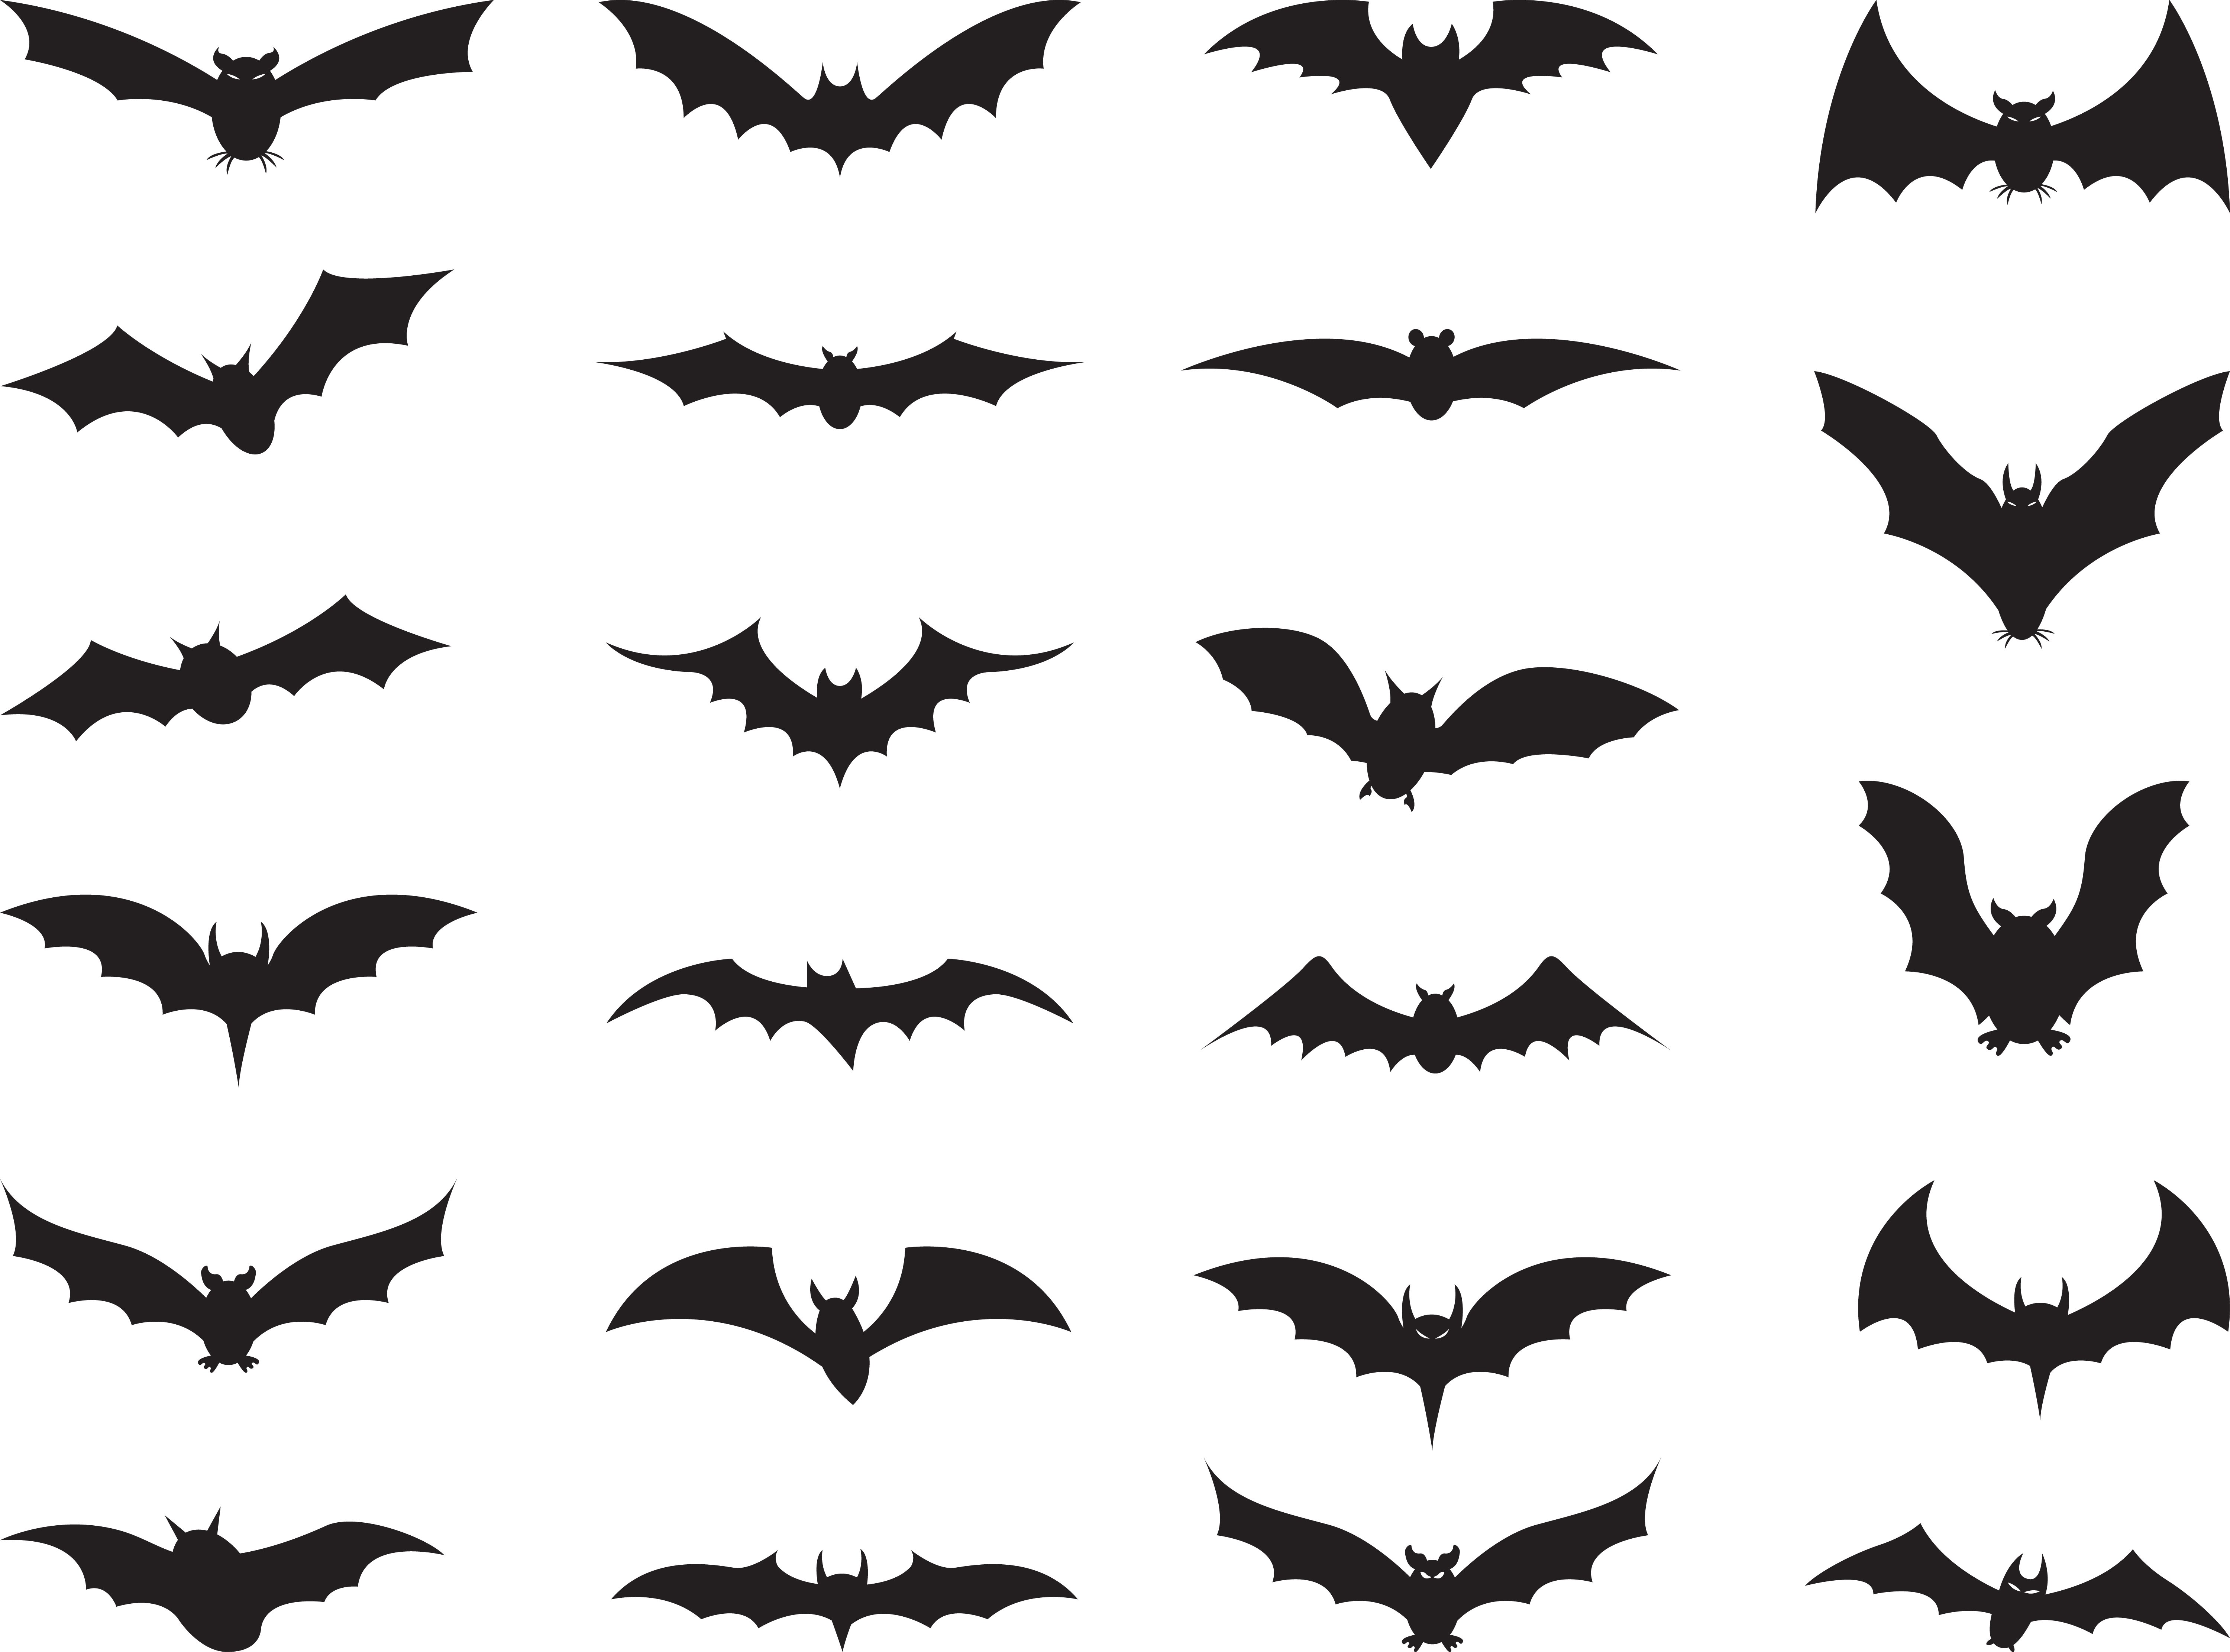 Different types of bats on the white.